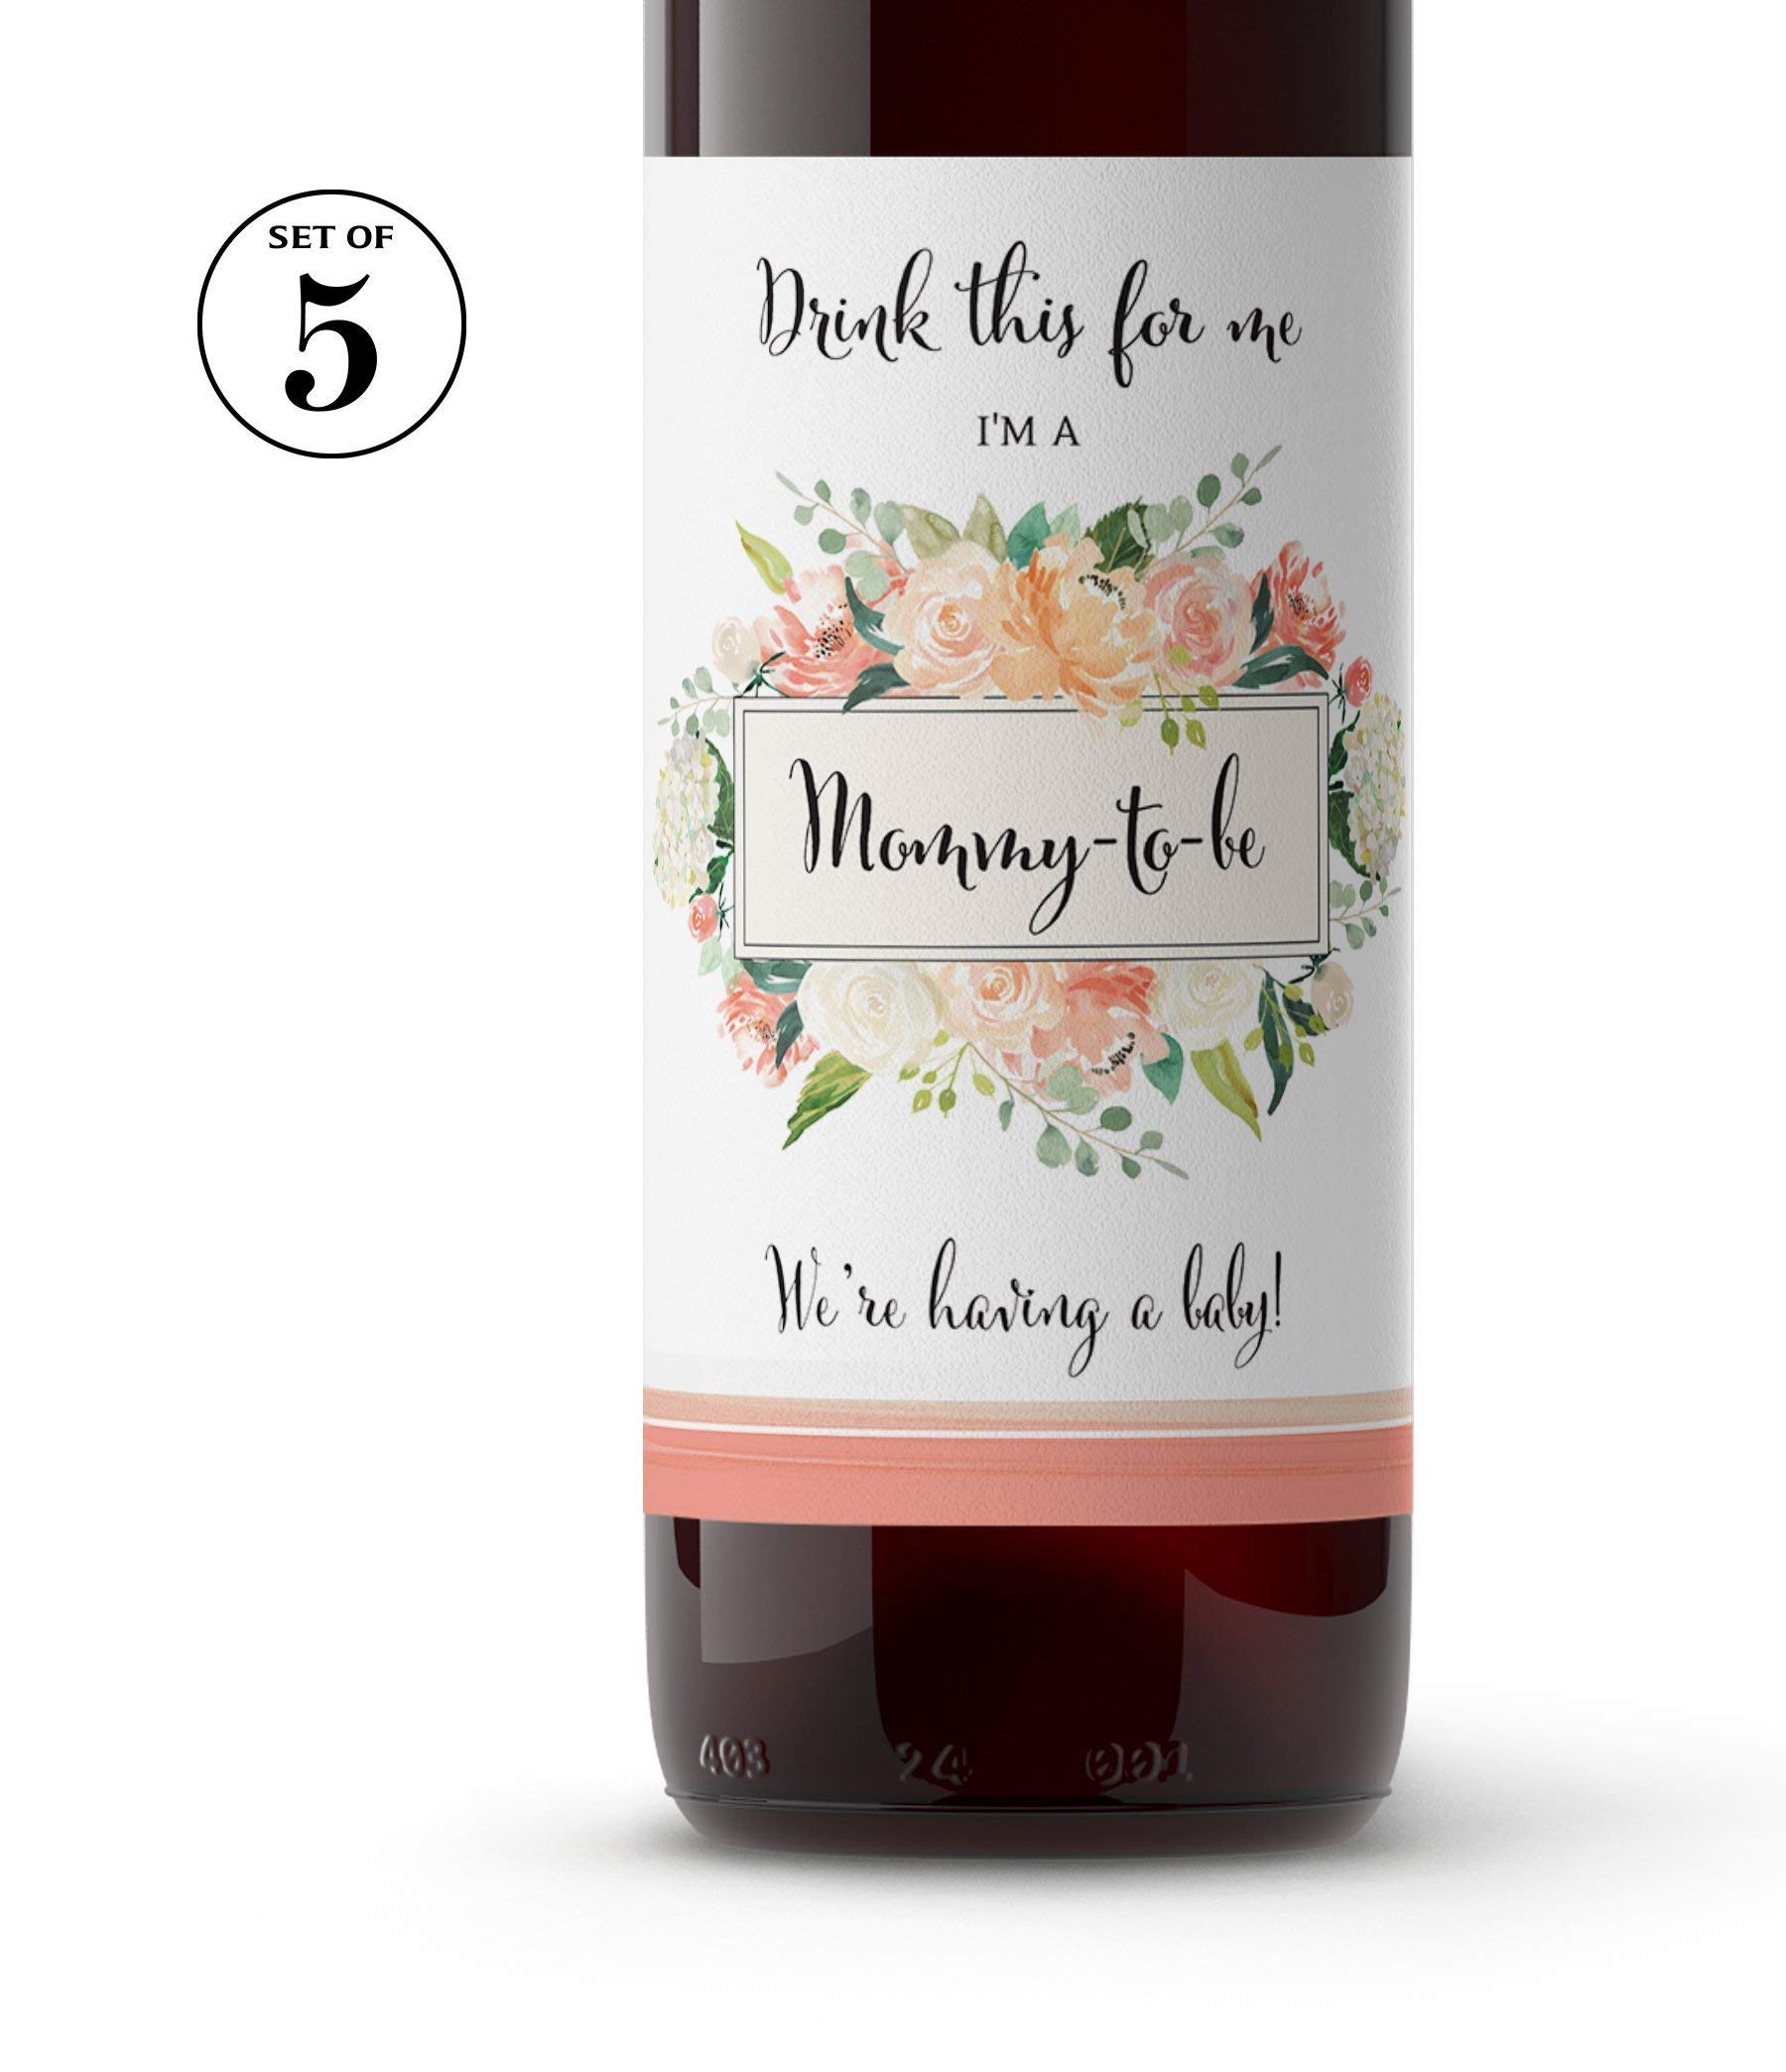 Drink This For Me - I'm a Mommy-To-Be ● SET of 5 ● Pregnancy Announcement Wine Labels, Pregnancy Reveal Wine label, Baby Surprise, Alternative to Pregnancy Announcement Cards WATERPROOF Peach A612-5M1